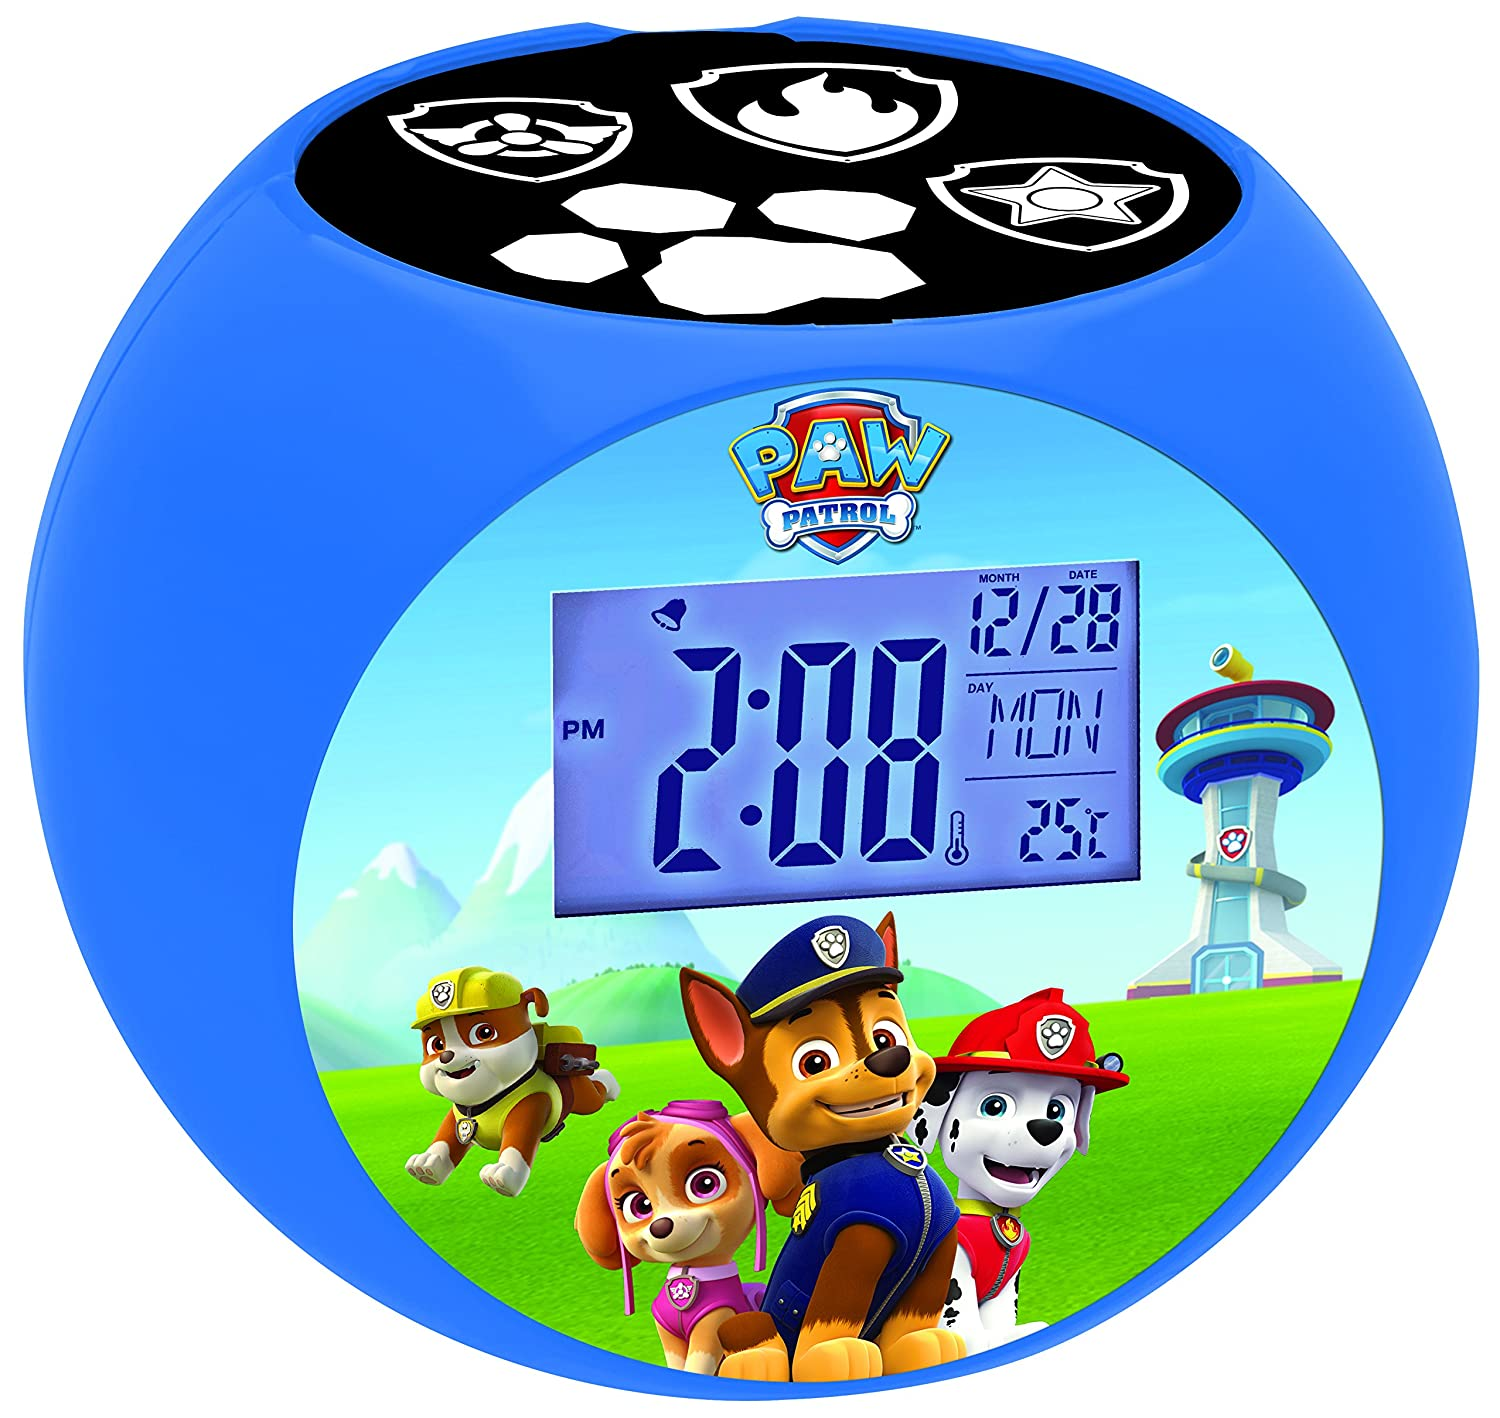 LEXIBOOK Paw Patrol Chase Radio projector clock, sound effects, battery-powered, Blue/Black, RL975PA